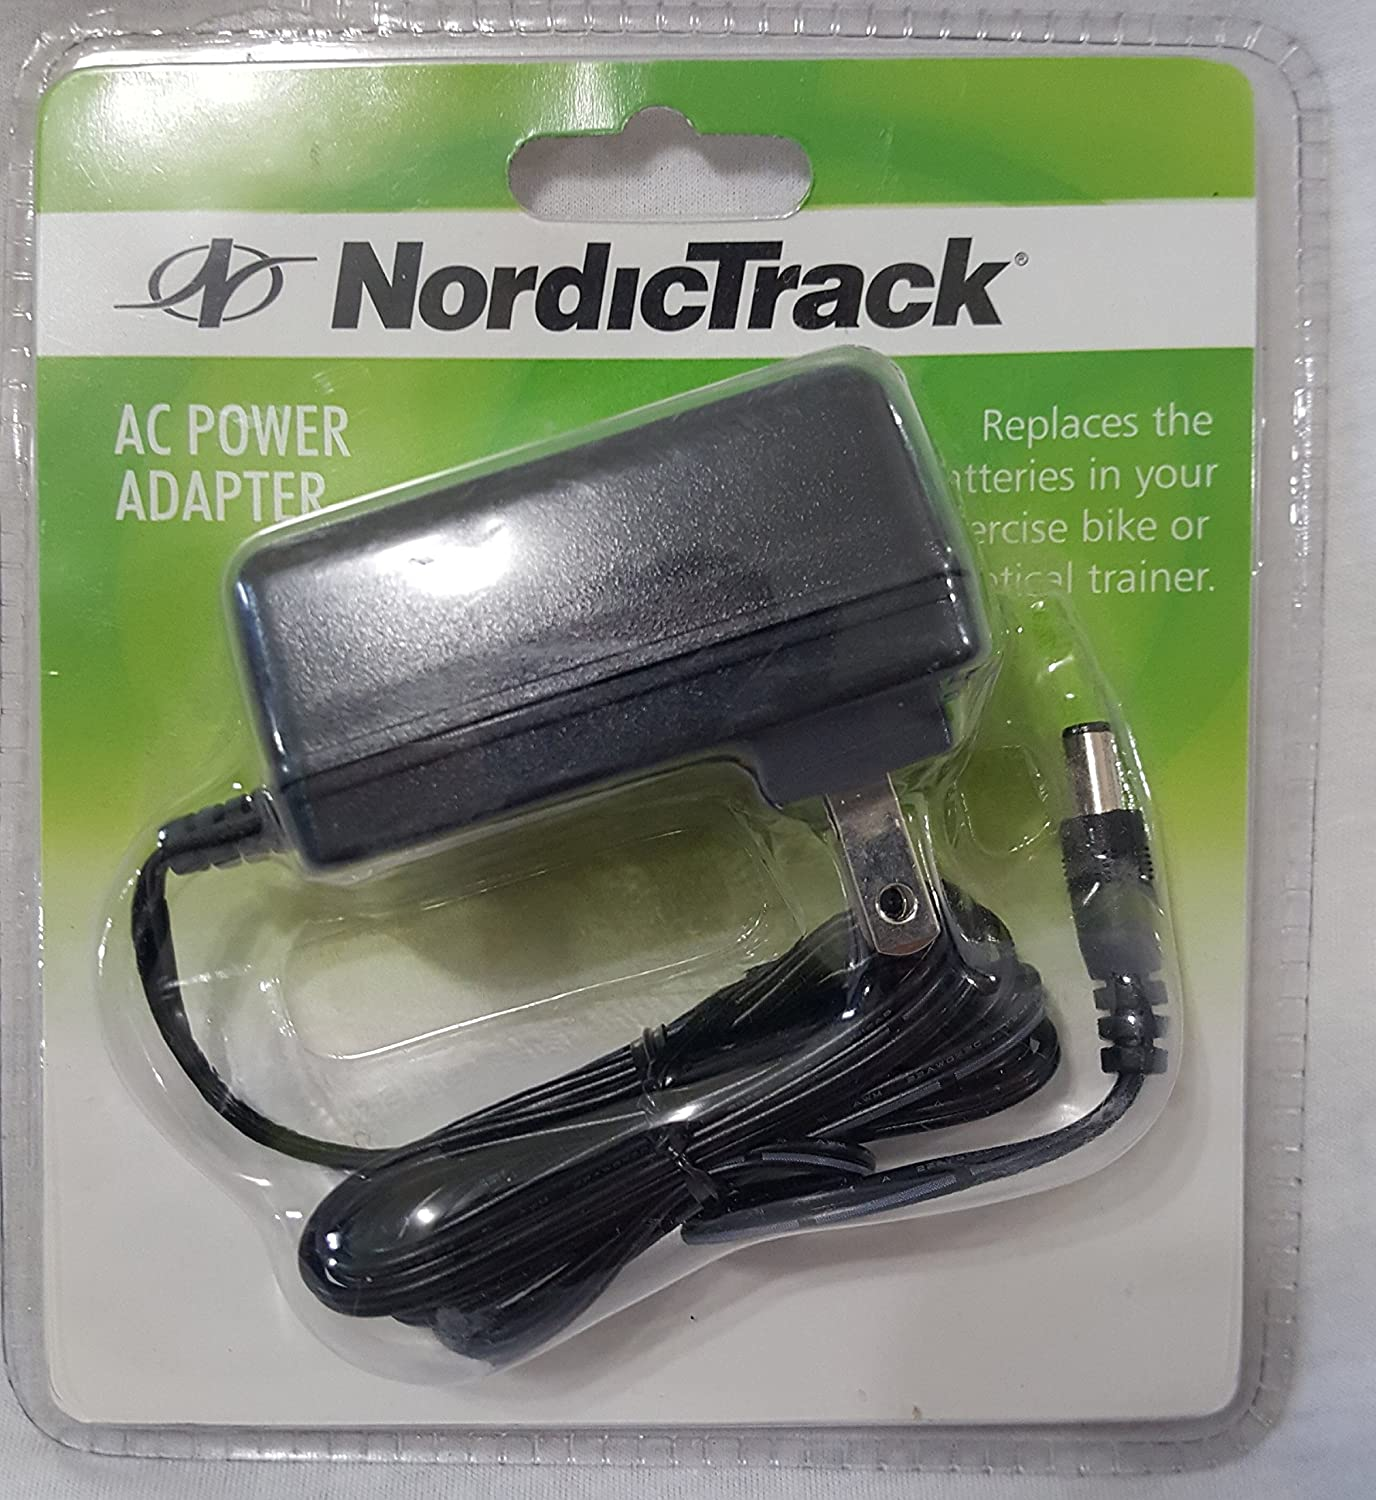 Nordictrack Ac Power Adapter Home Audio Theater For Supply We Can Use Batteries Or 6v Regulated